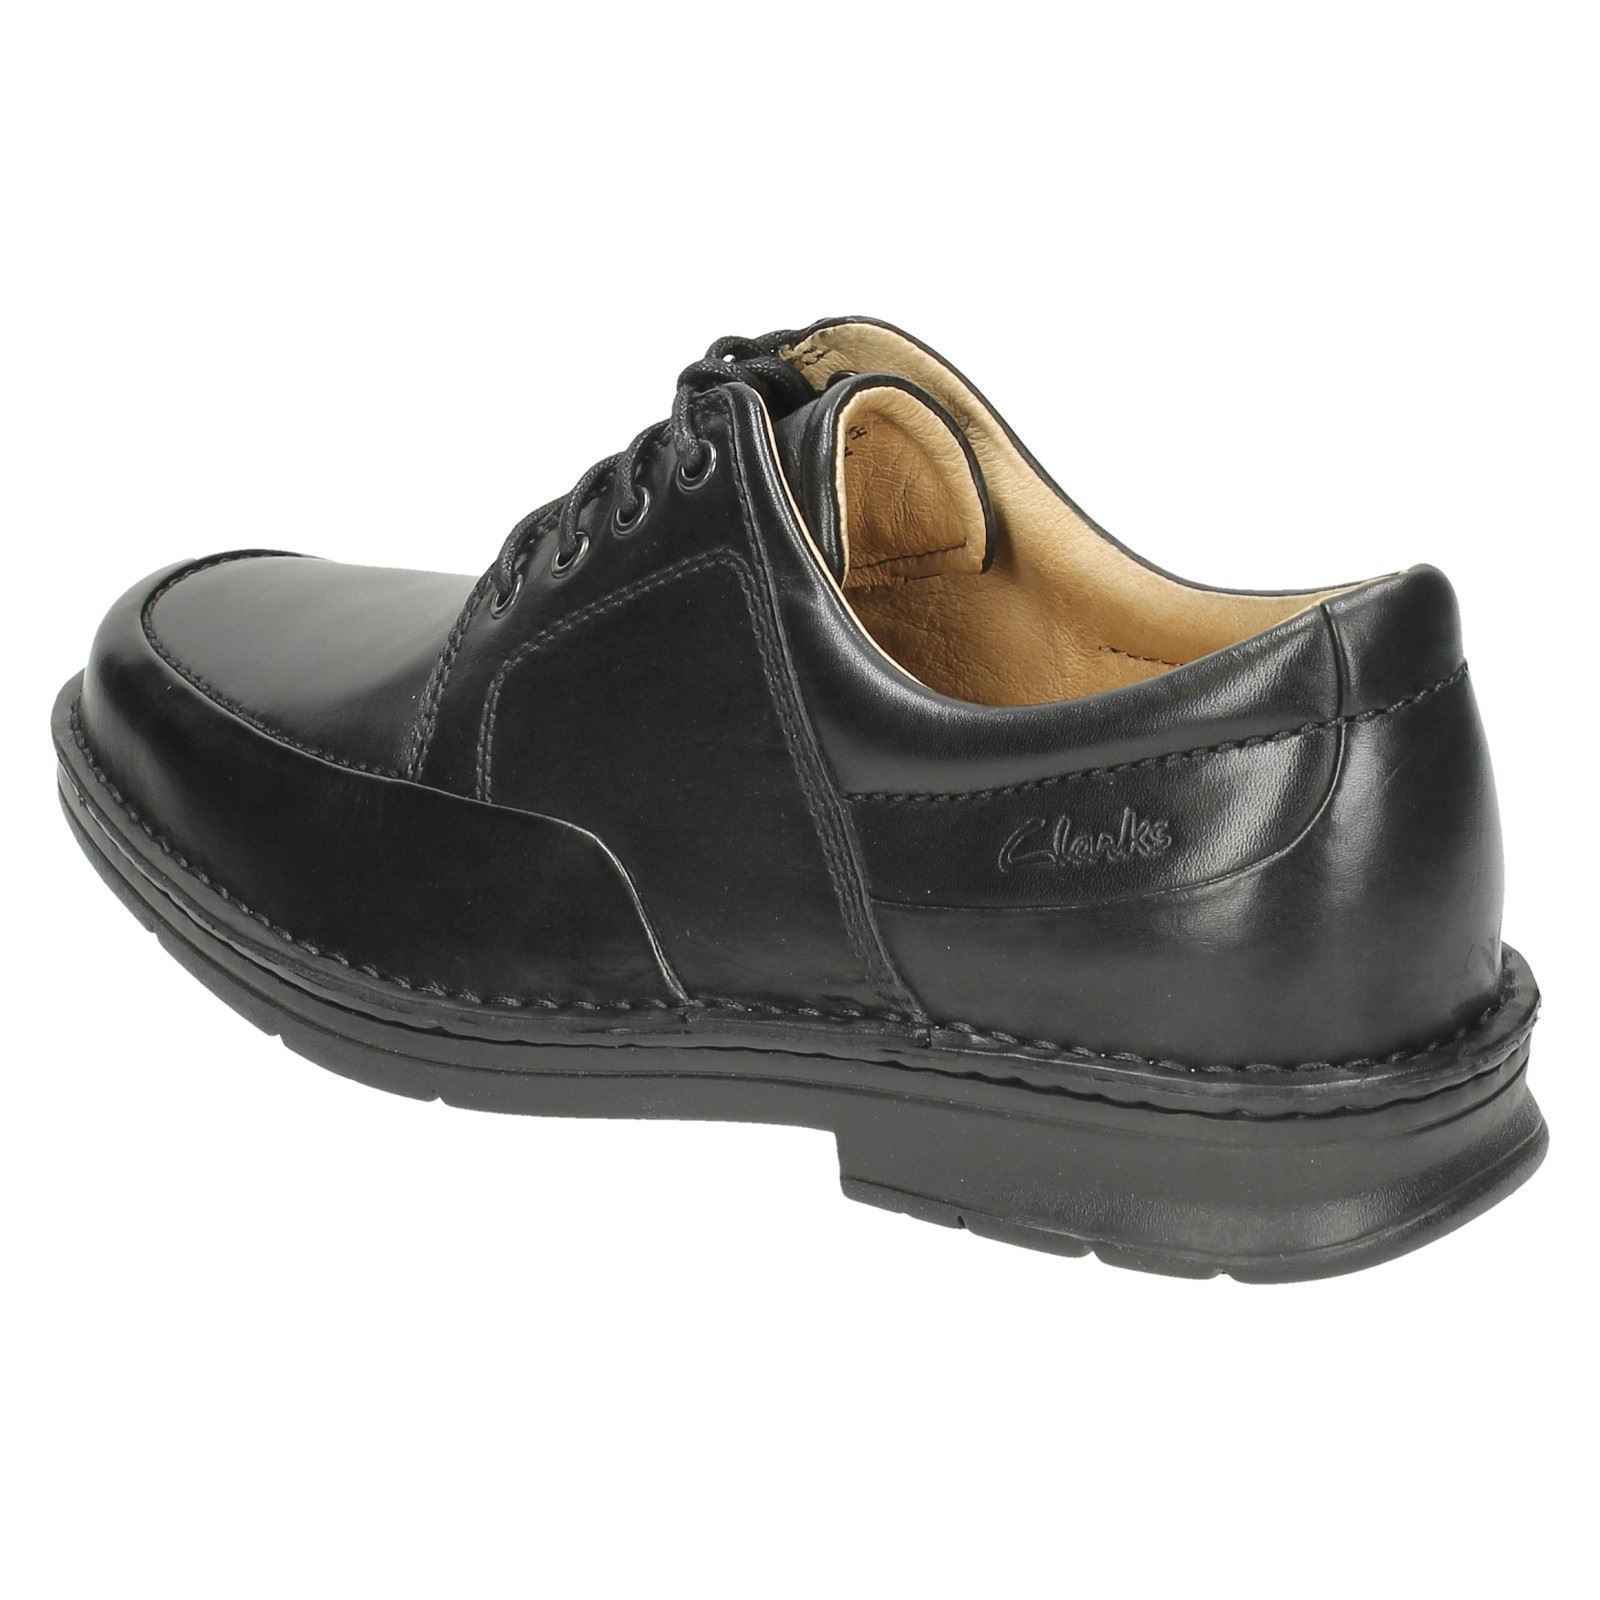 Clarks Habill Hommes Chaussures Habill Chaussures Hommes Clarks WtIwnIqPxY